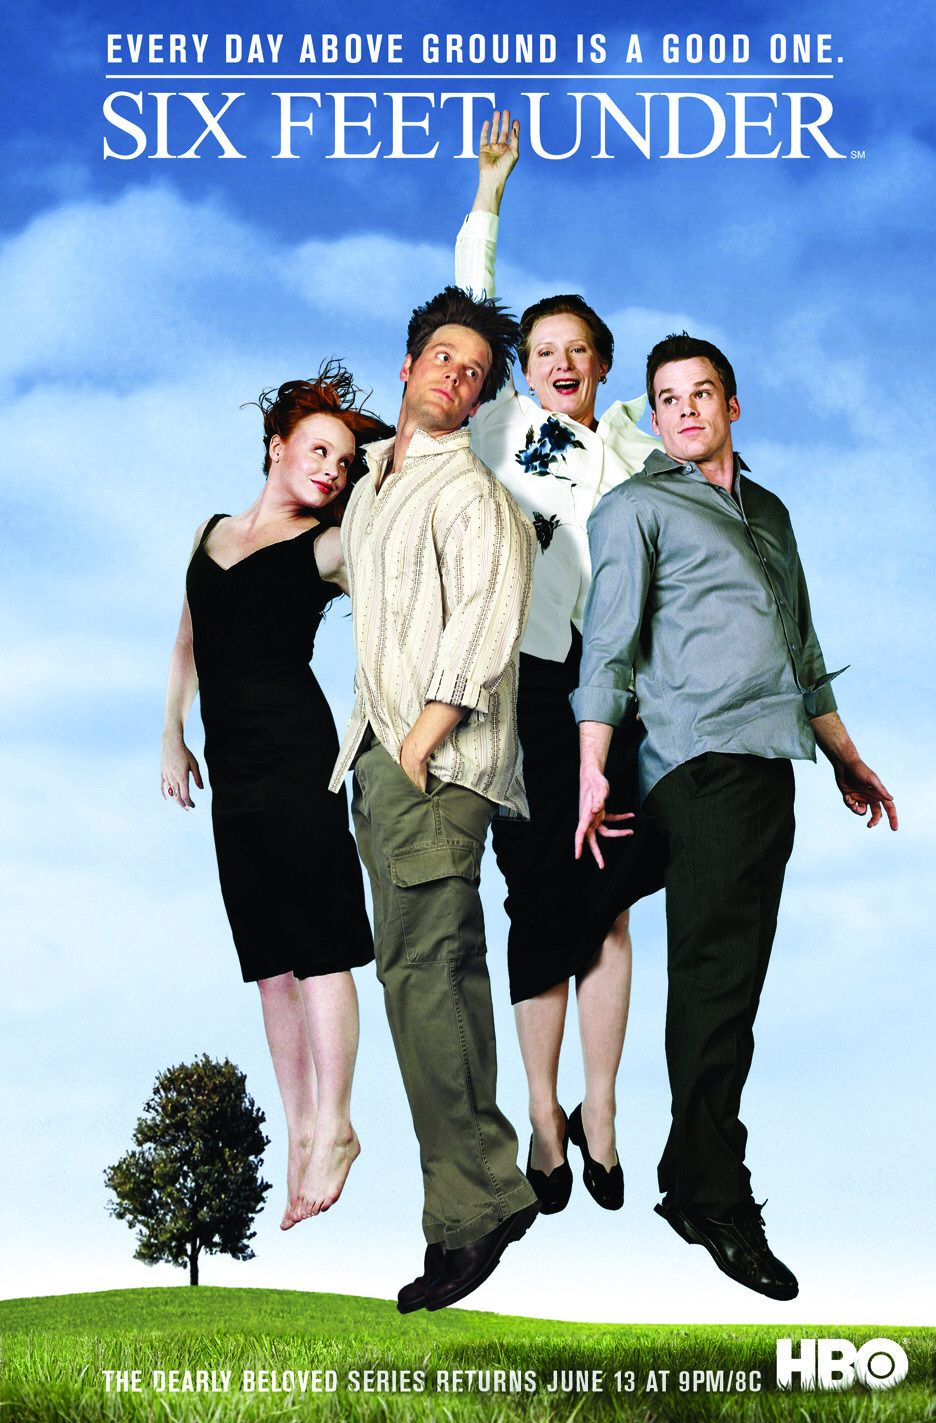 Six Feet Under (#9 of 9): Extra Large Movie Poster Image ...